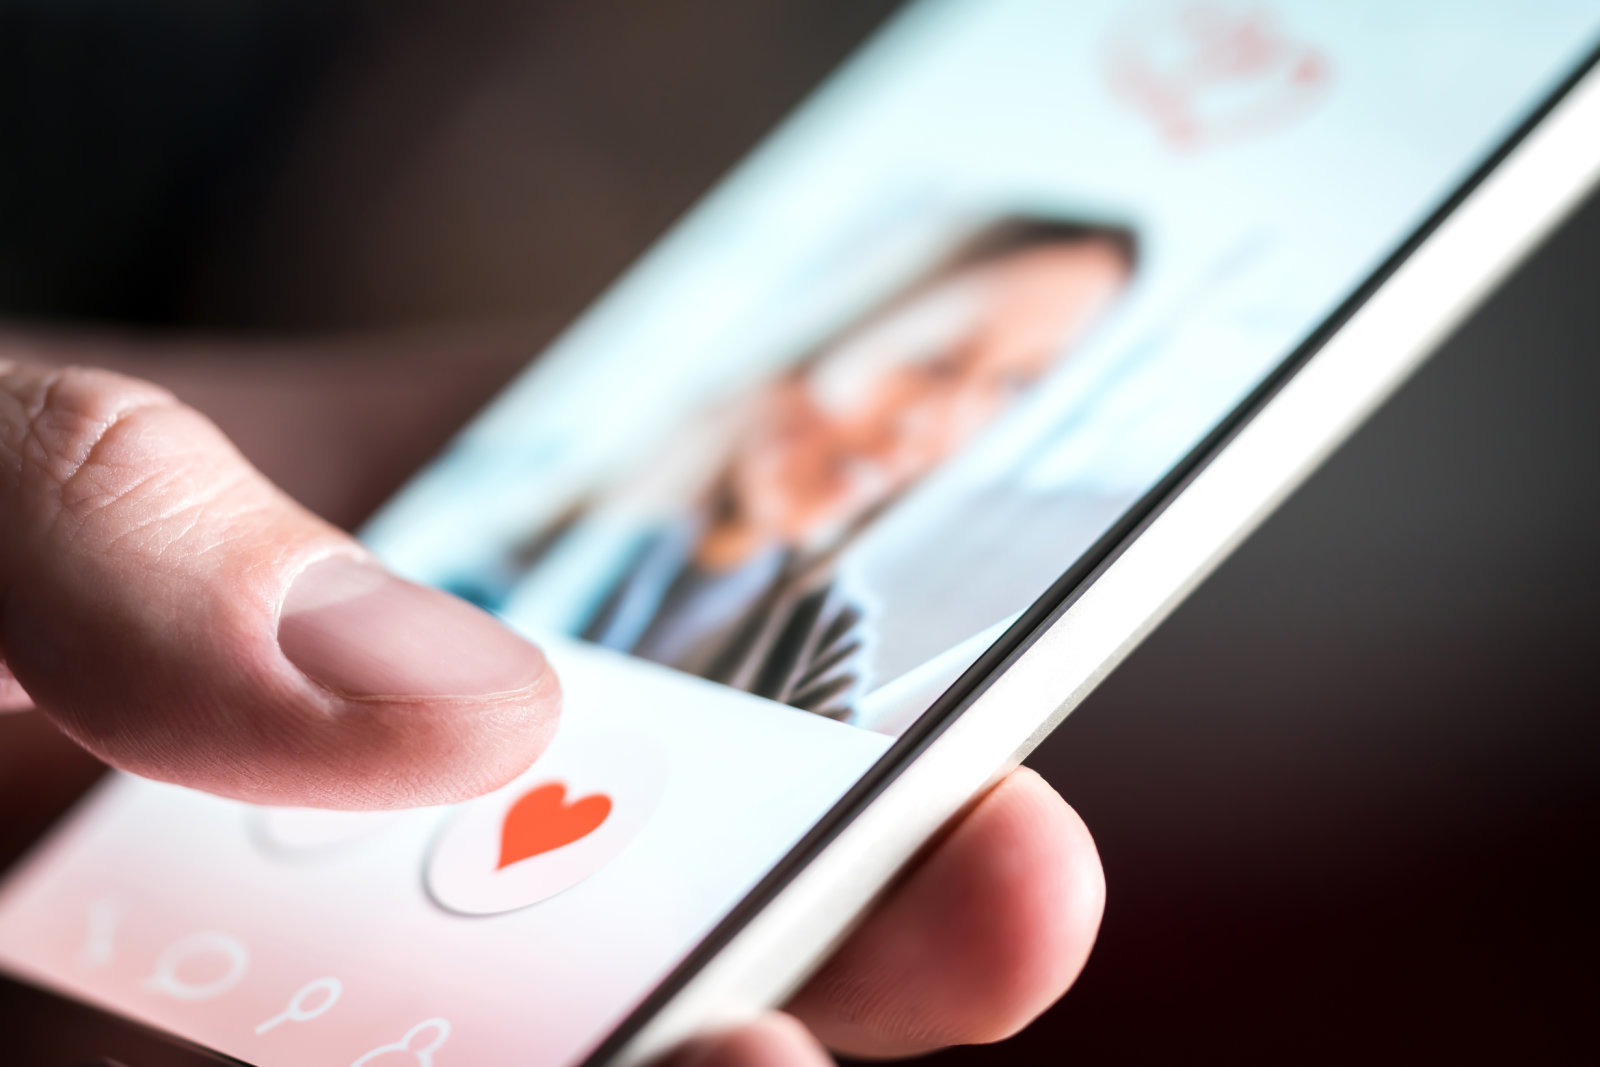 The median cost for online dating scams is 7 times higher than regular online scams, but when done correctly online dating can be perfectly safe. This infographic outlines common scams and how to avoid them when looking for love online